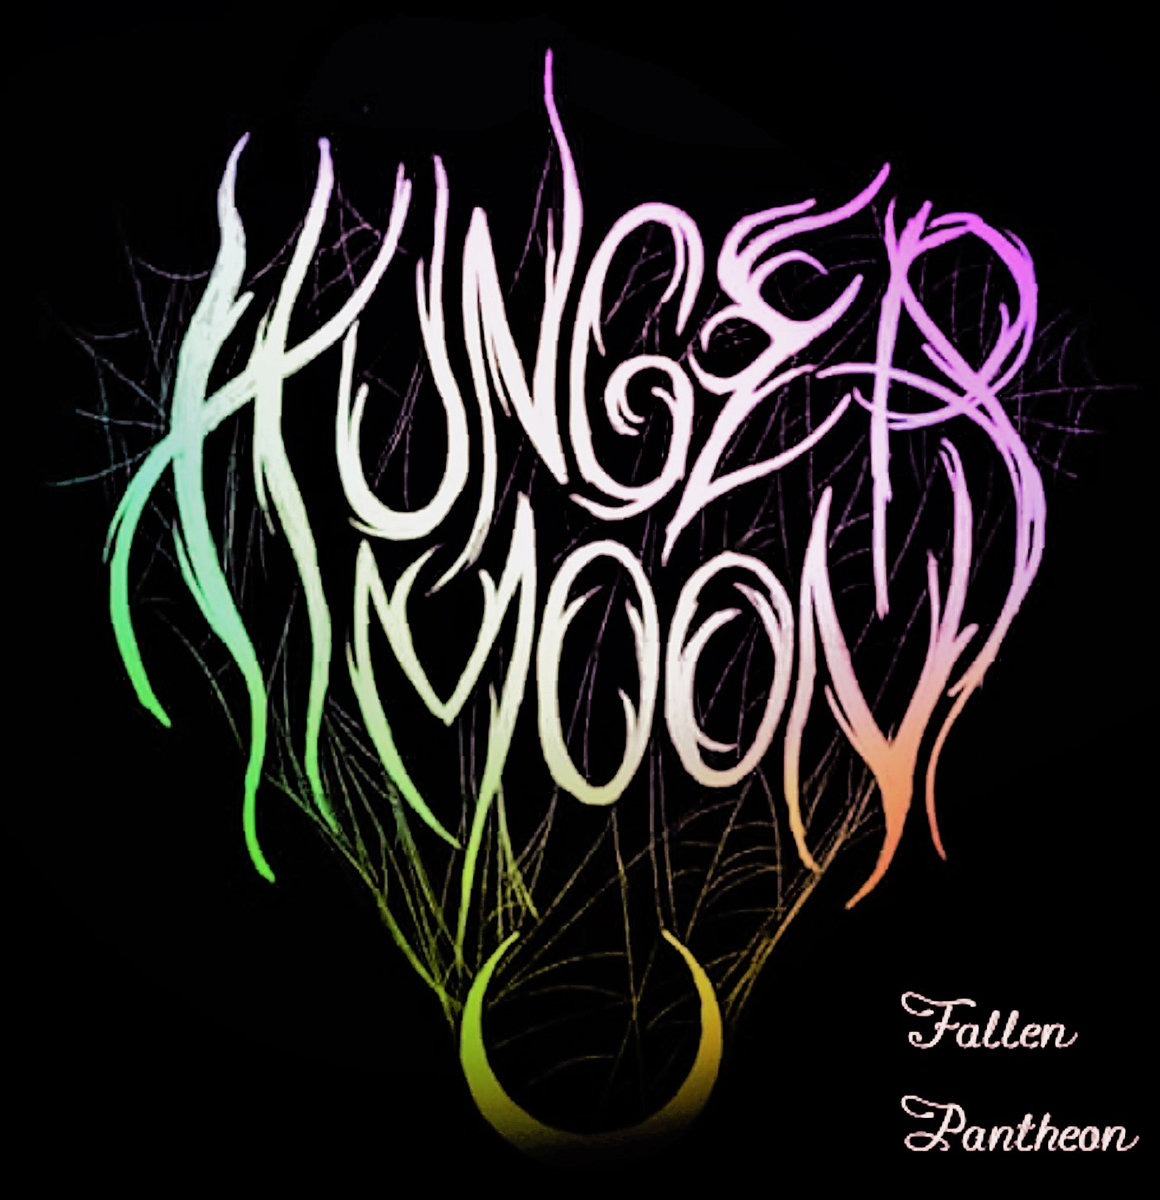 Album Review: HUNGER MOON 'Fallen Pantheon'